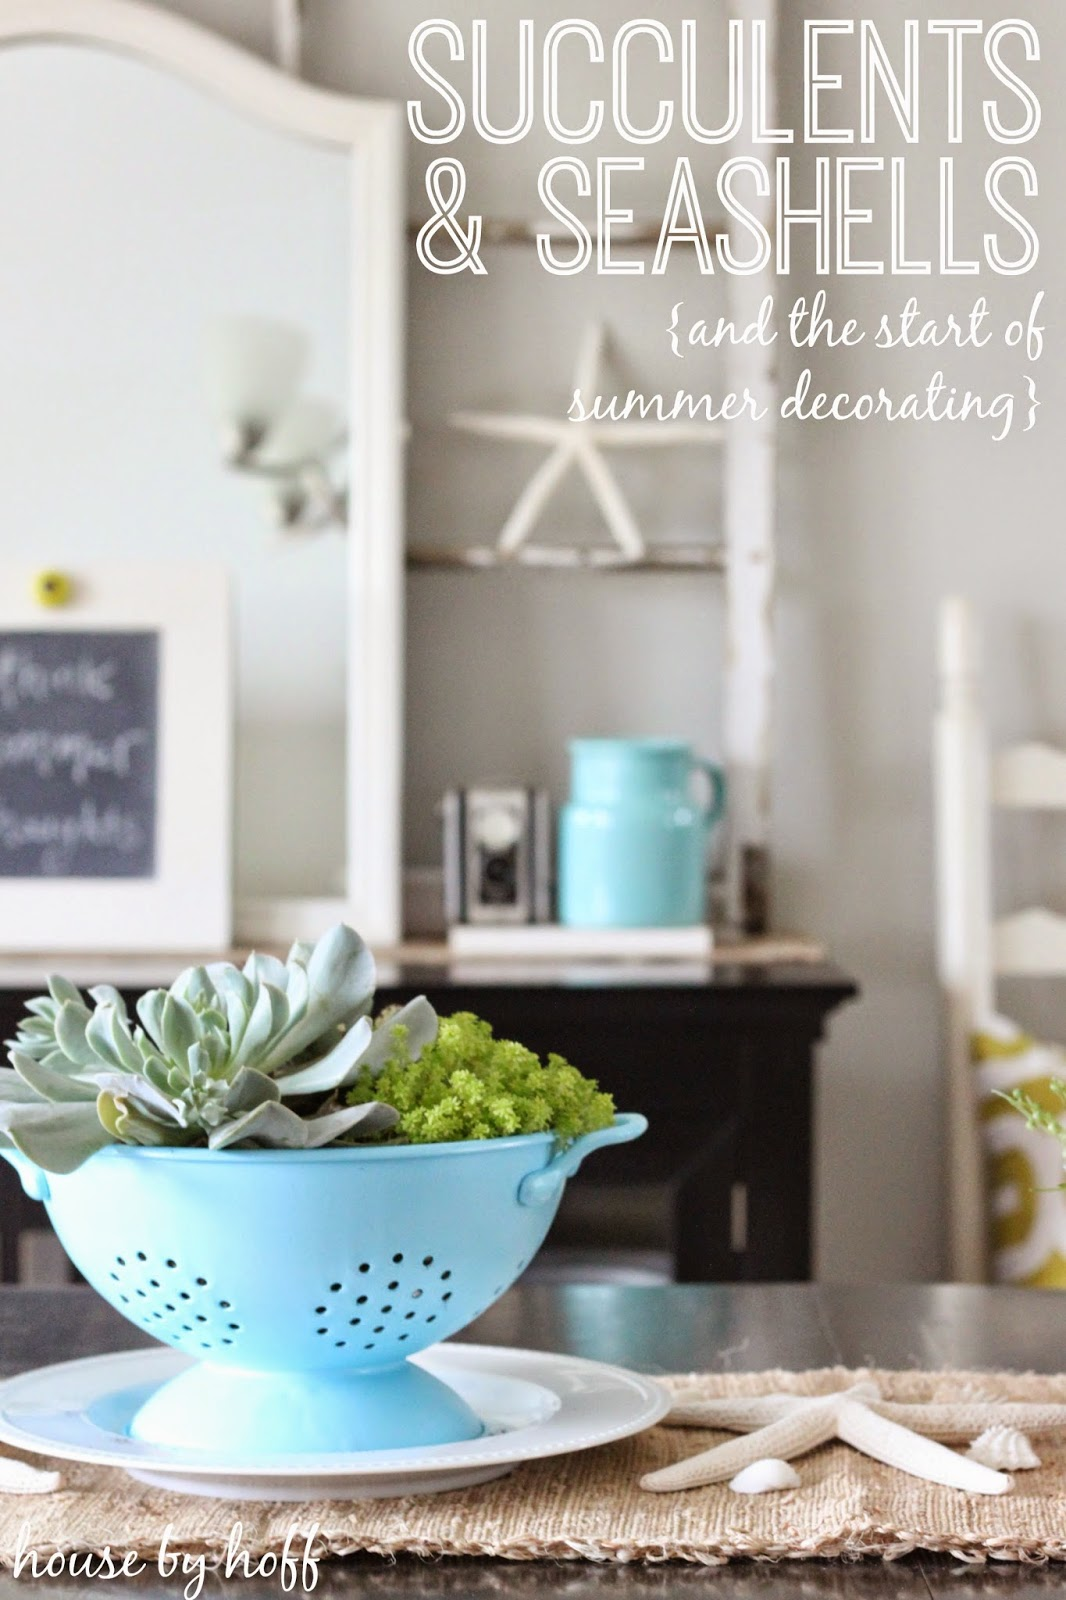 succulent and seashell decor via housebyhoff.bogspot.com